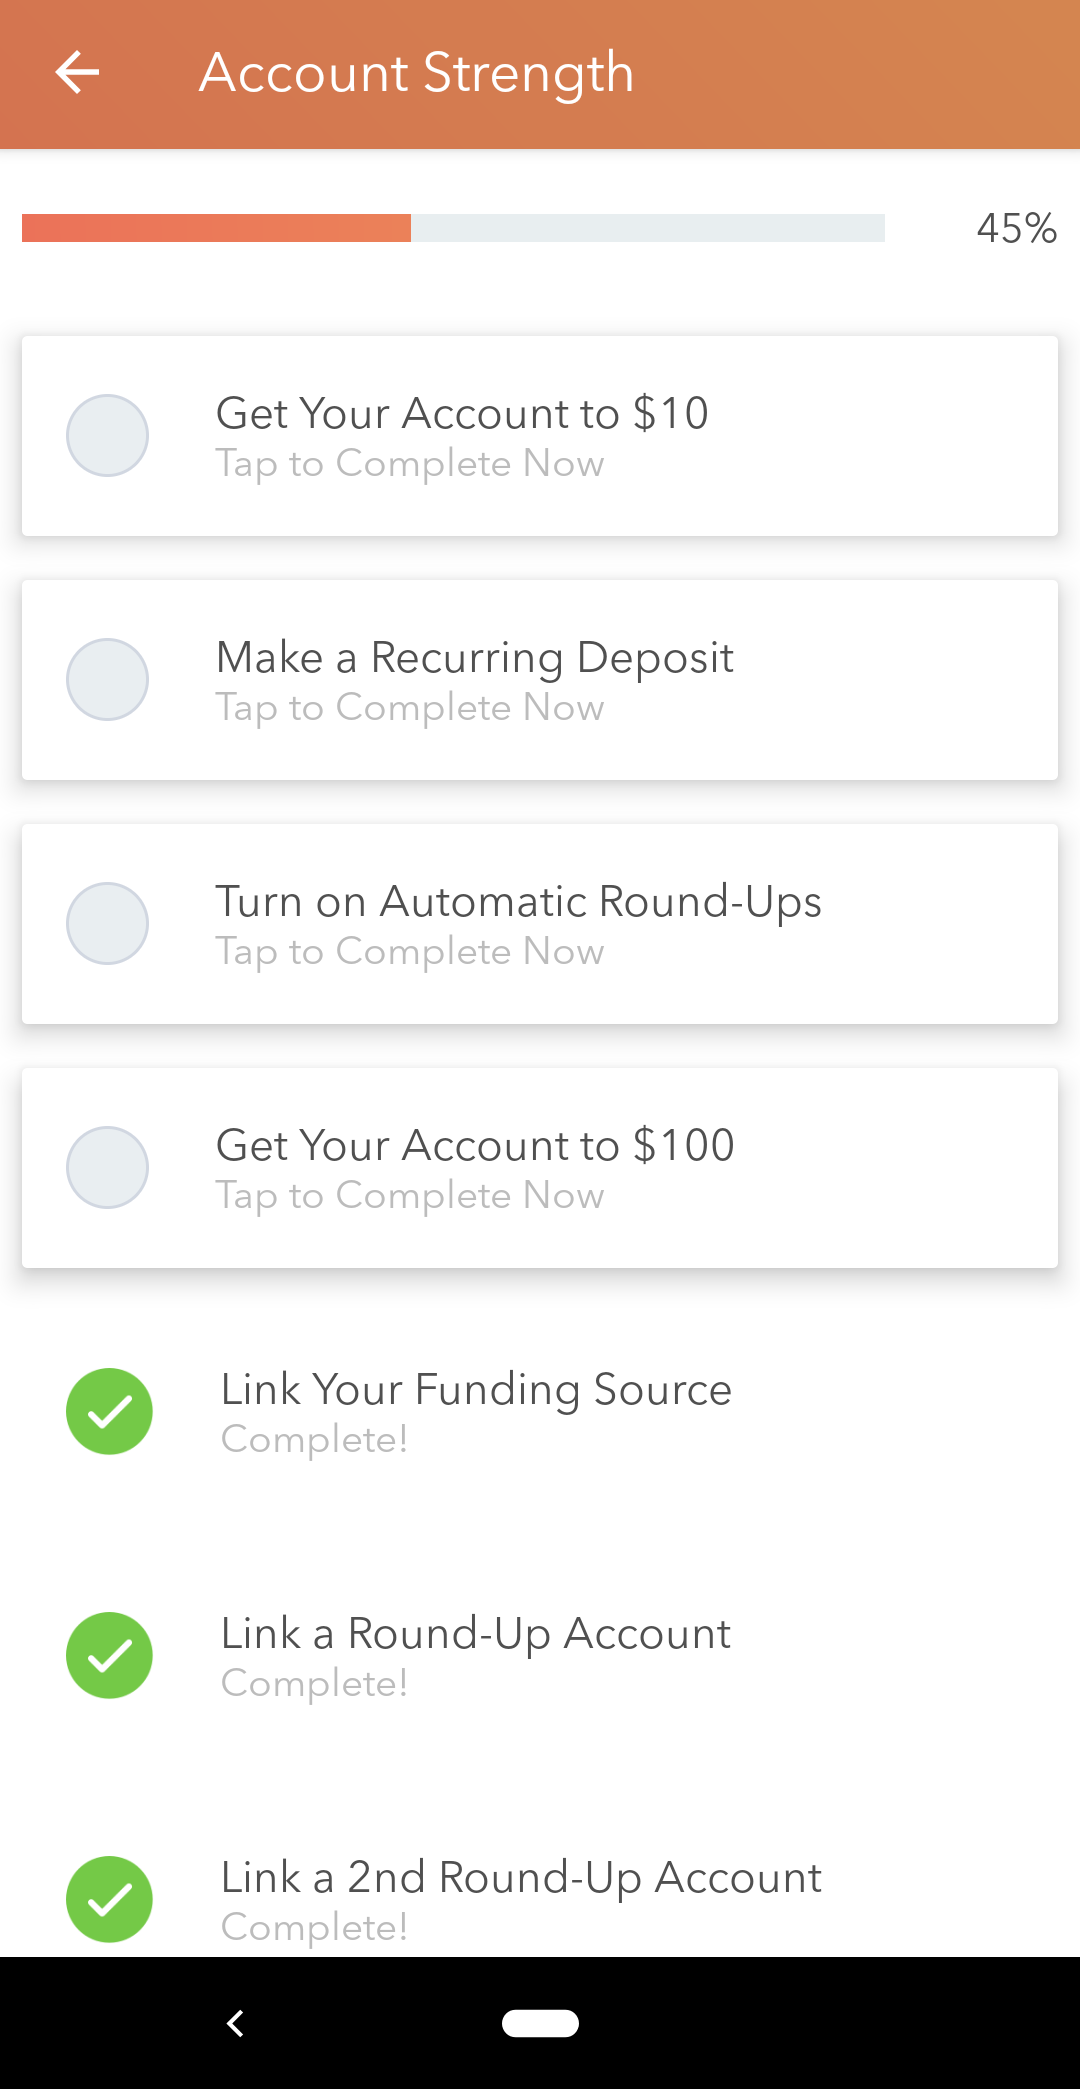 This is a screen capture from mobile banking and investment app Acorns. It shows Acorns' user onboaridng checklist. It's a great example of an onboarding checklist. Three items are checked off on the list and there is a % progress bar at the top. Unfinished tasks are shown with a grey circle next to them.